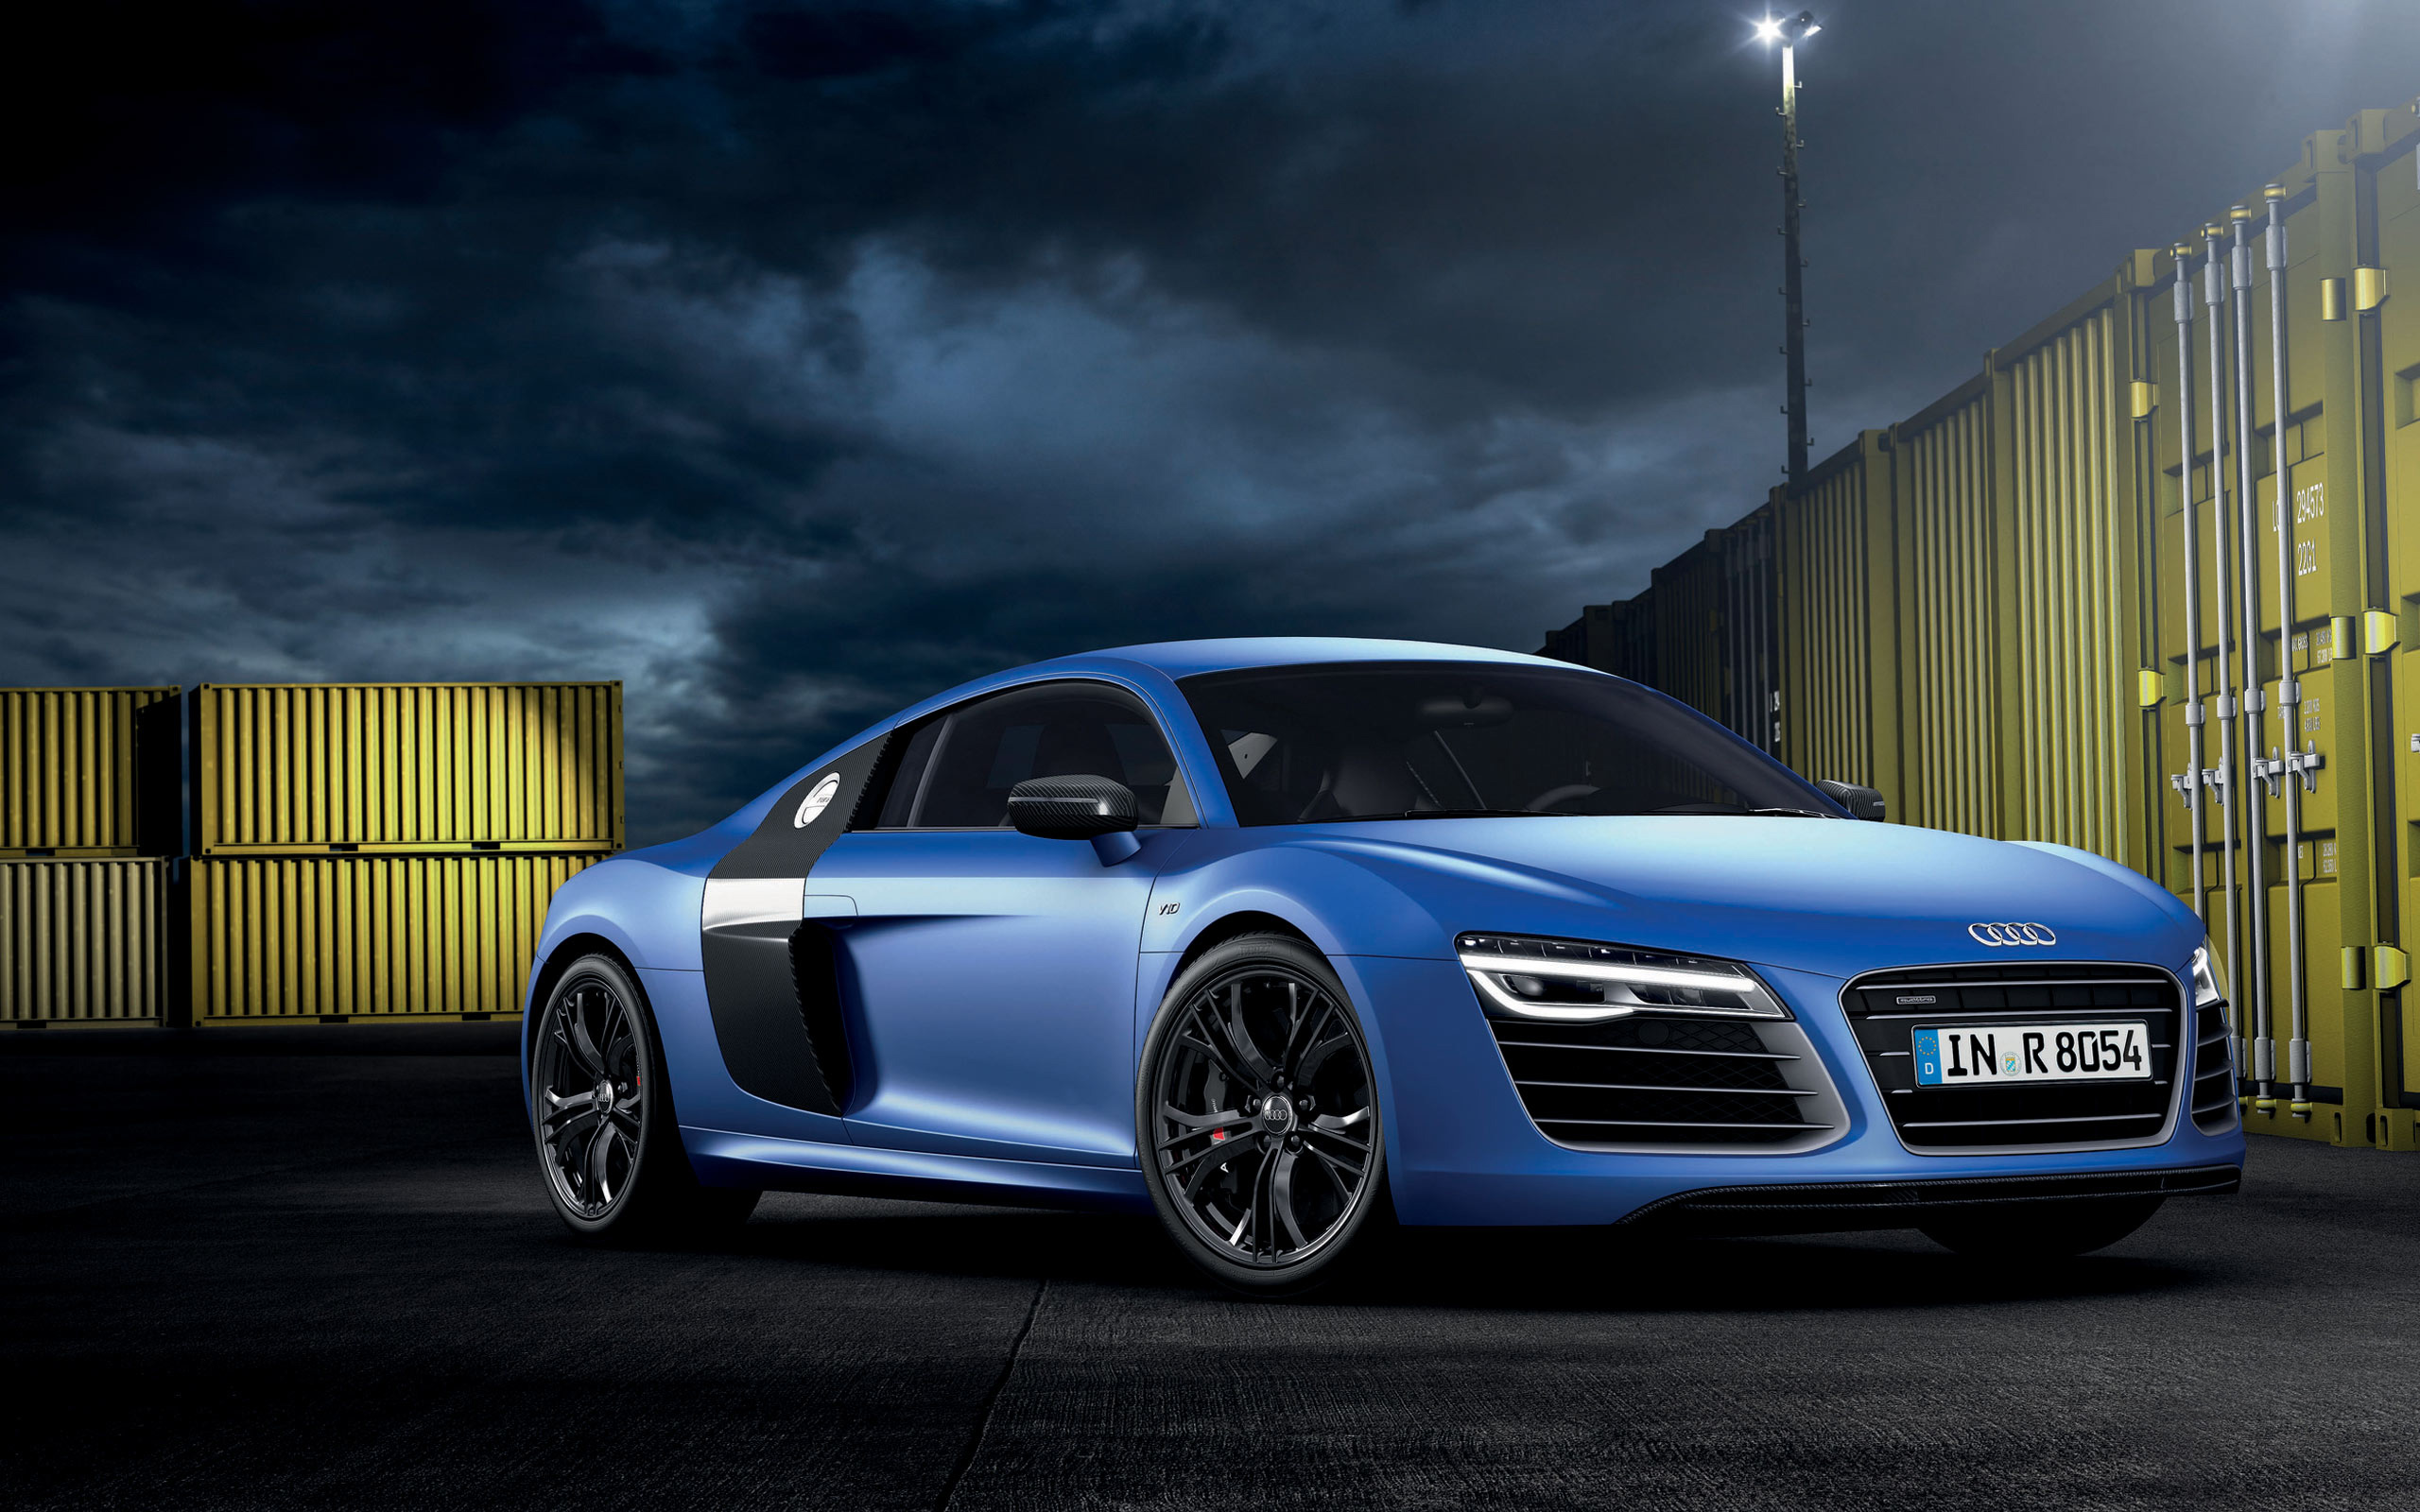 audi r8 v10 plus wallpaper | hd car wallpapers | id #3114